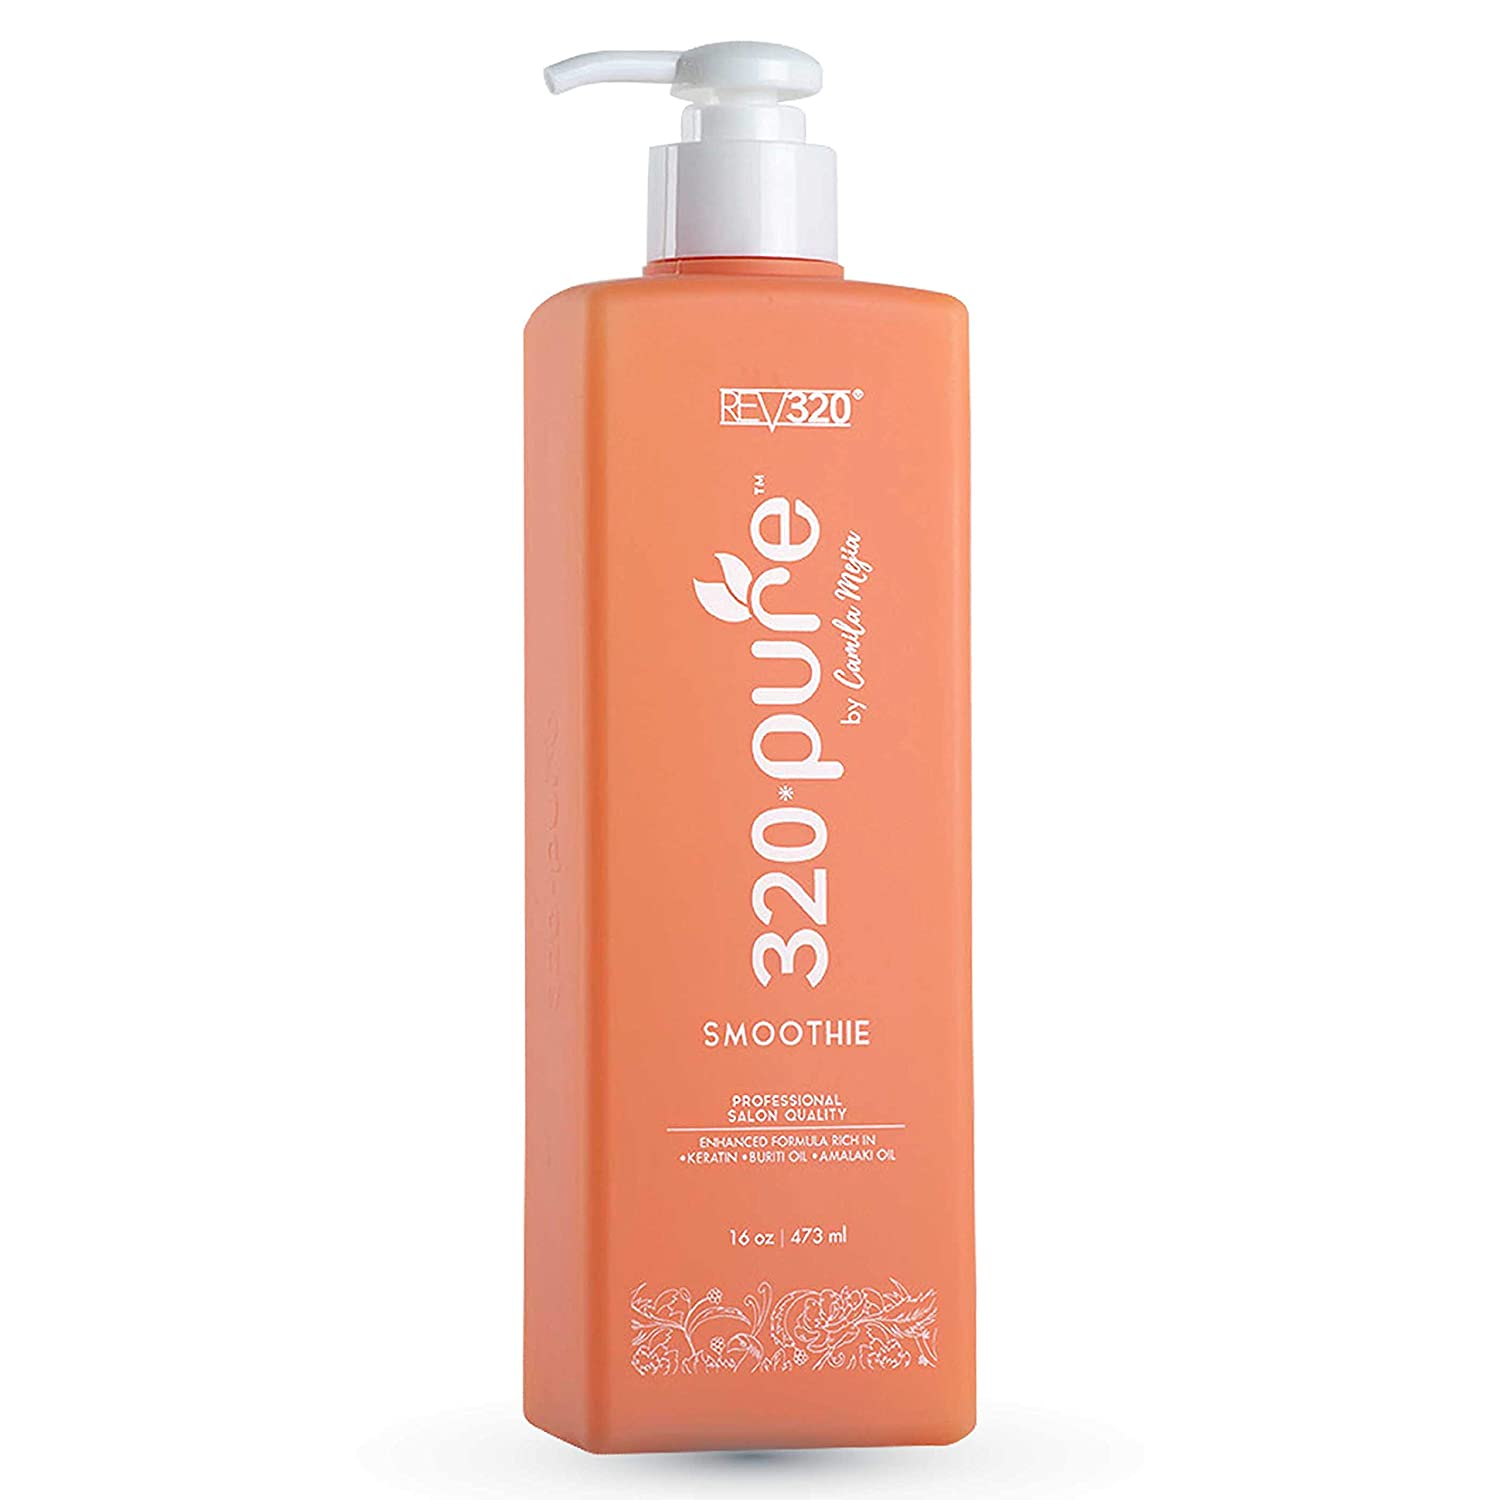 320 PURE SMOOTHIE - Leave In Conditioner - 100% Pure Extracts - Frizz Control Lock In Moisture (16oz)